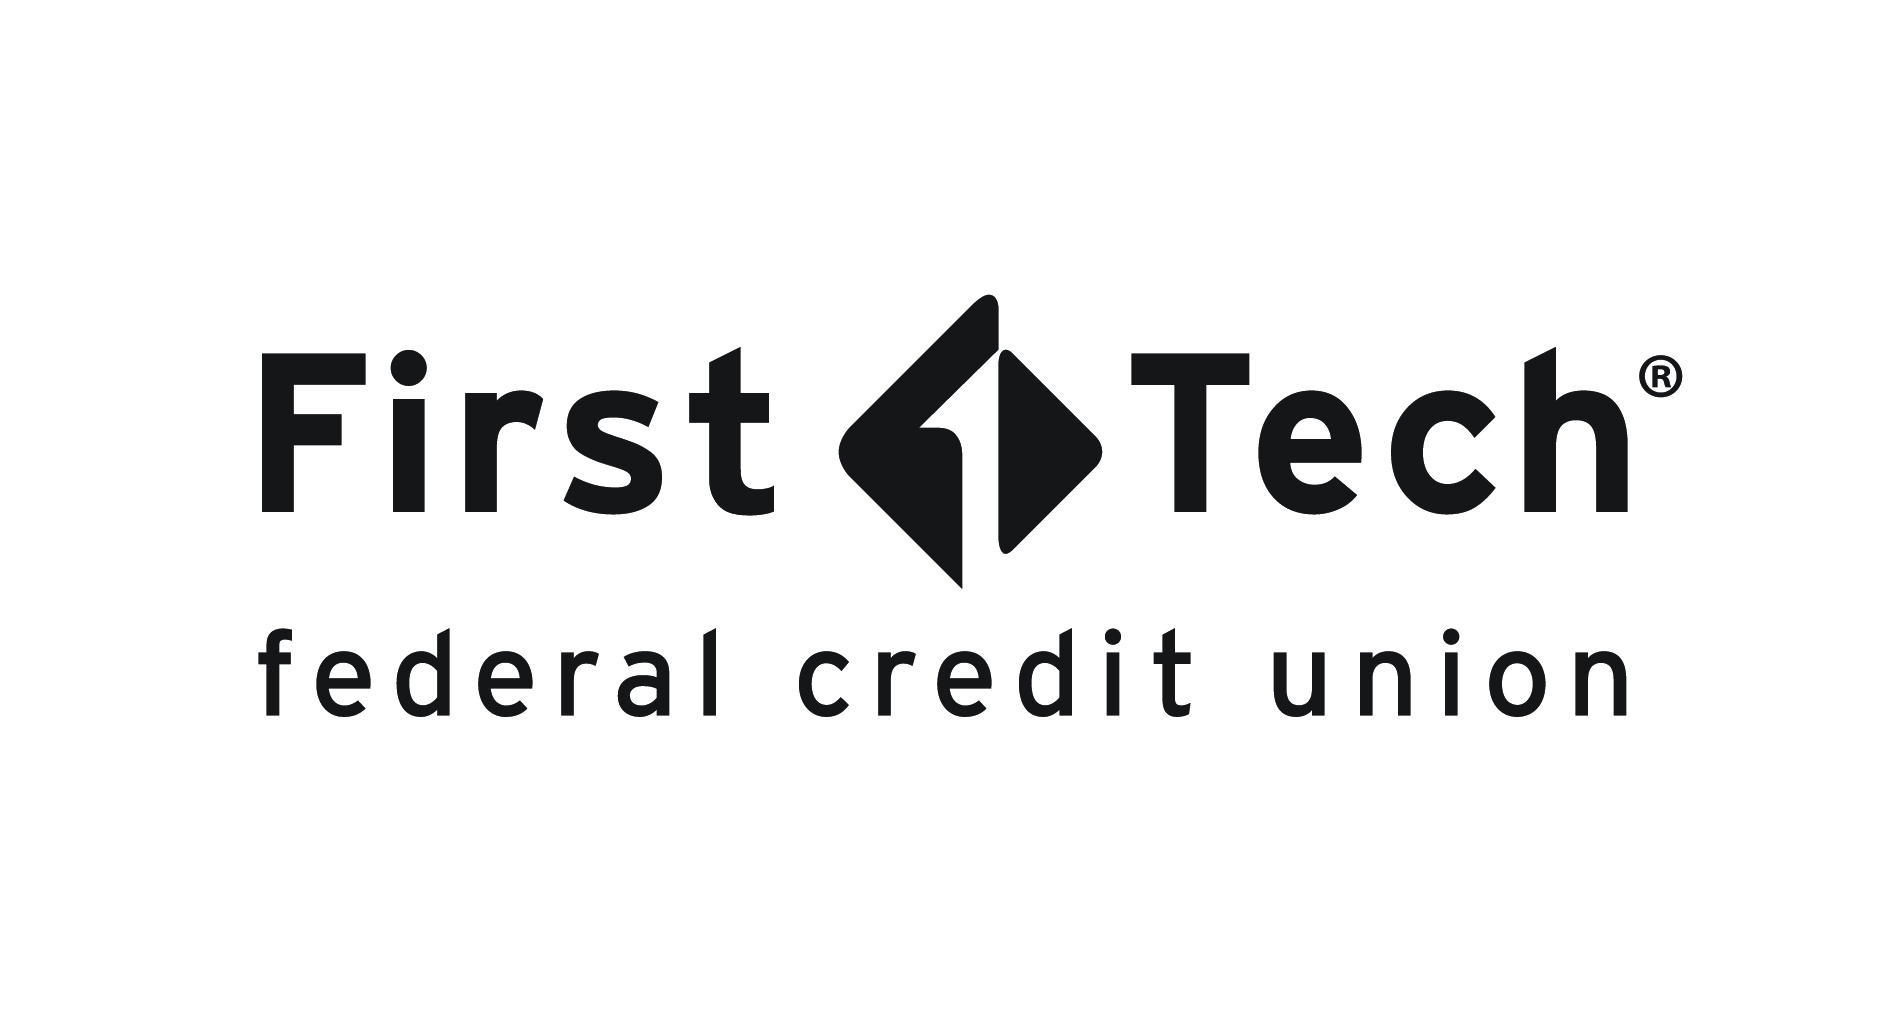 19-First Tech Federal Credit Union.jpg